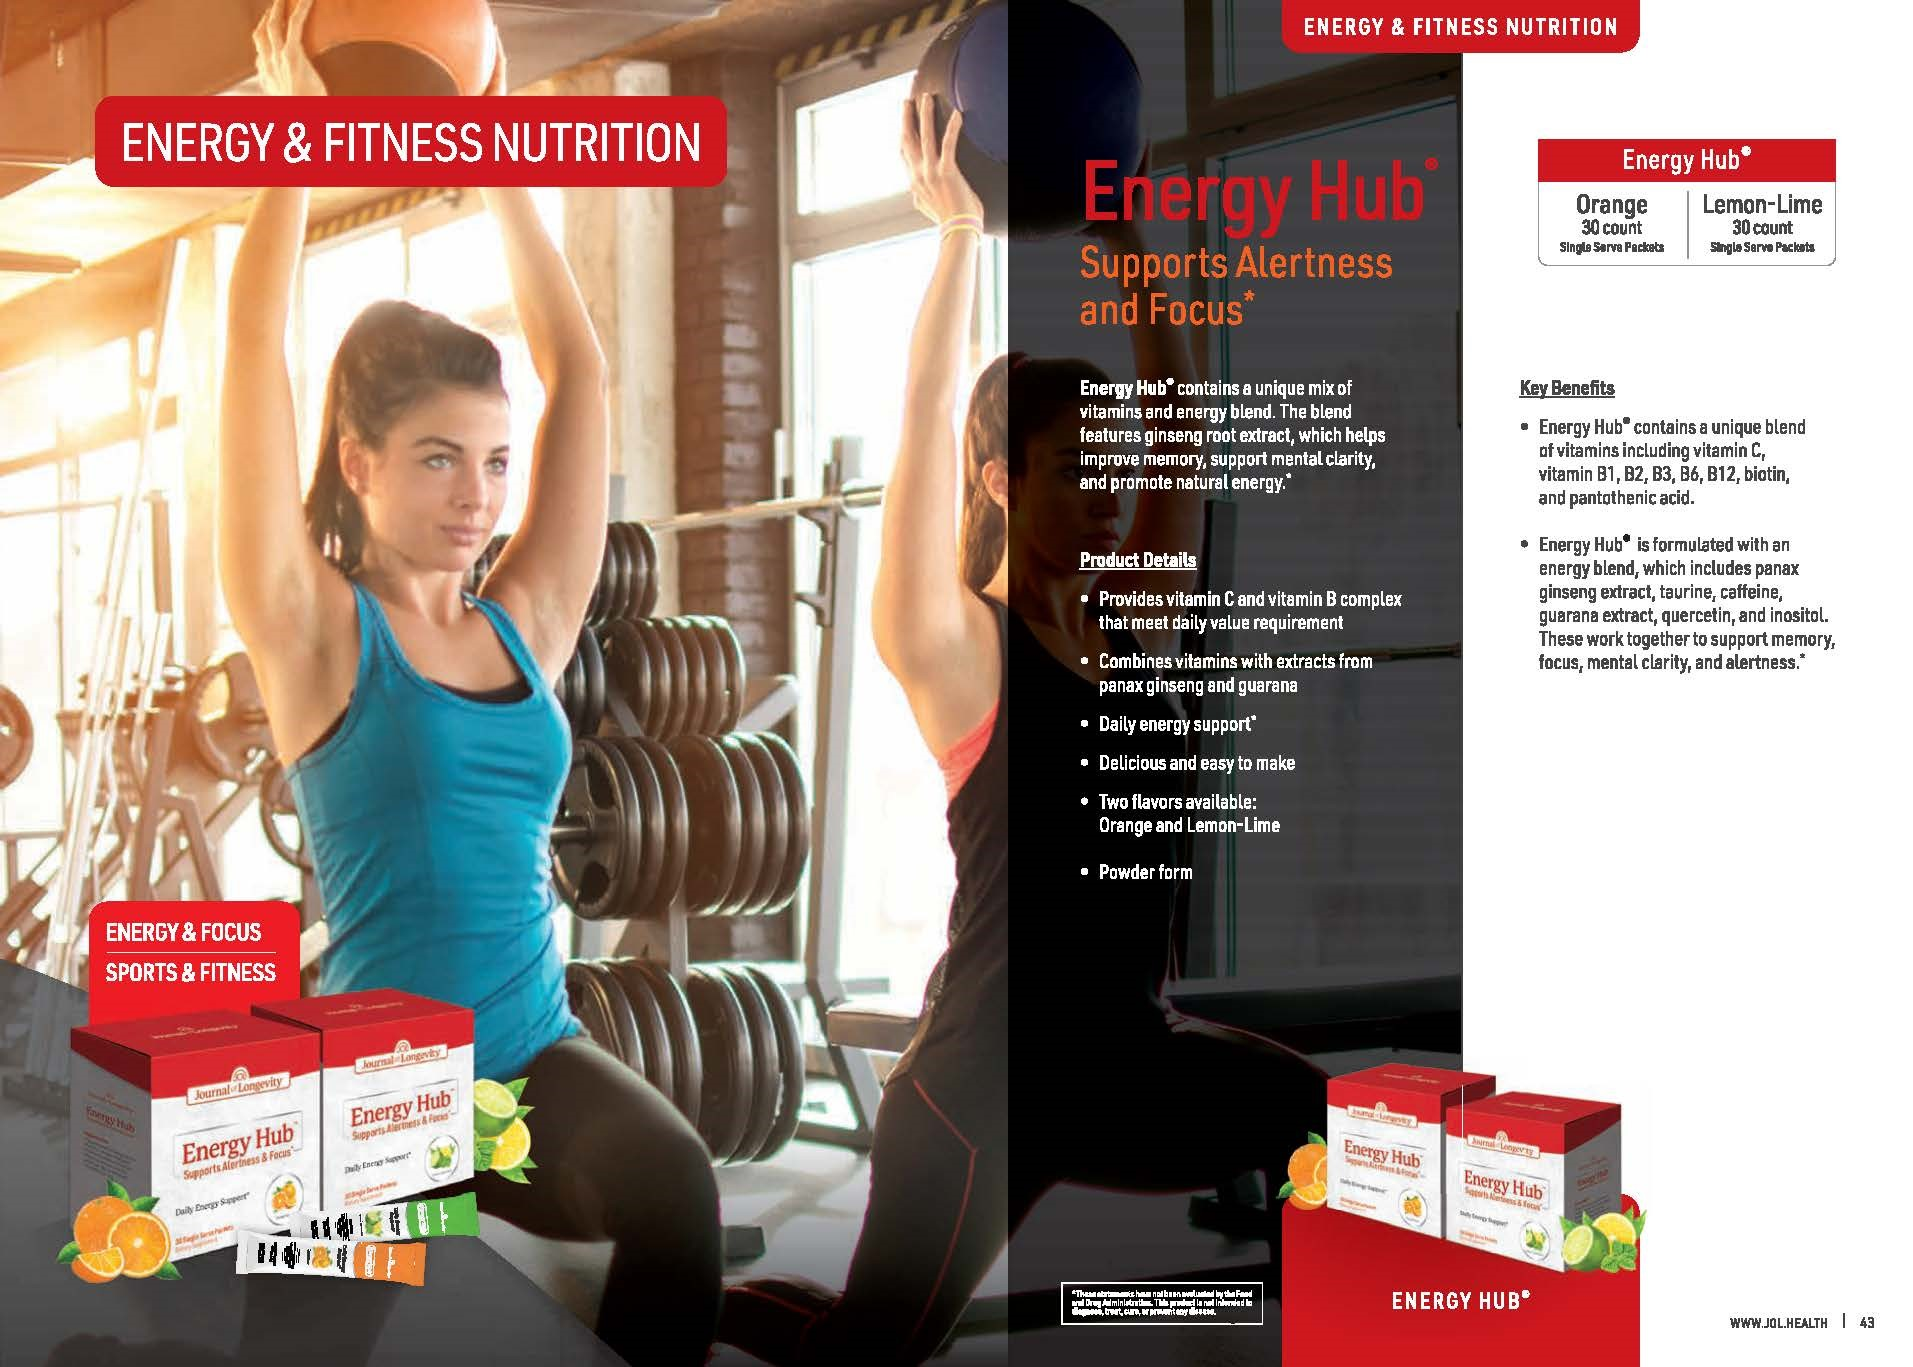 Journal of Longevity Energy Hub Powder Form Supplement For Energy And Focus - Sports And Fitness